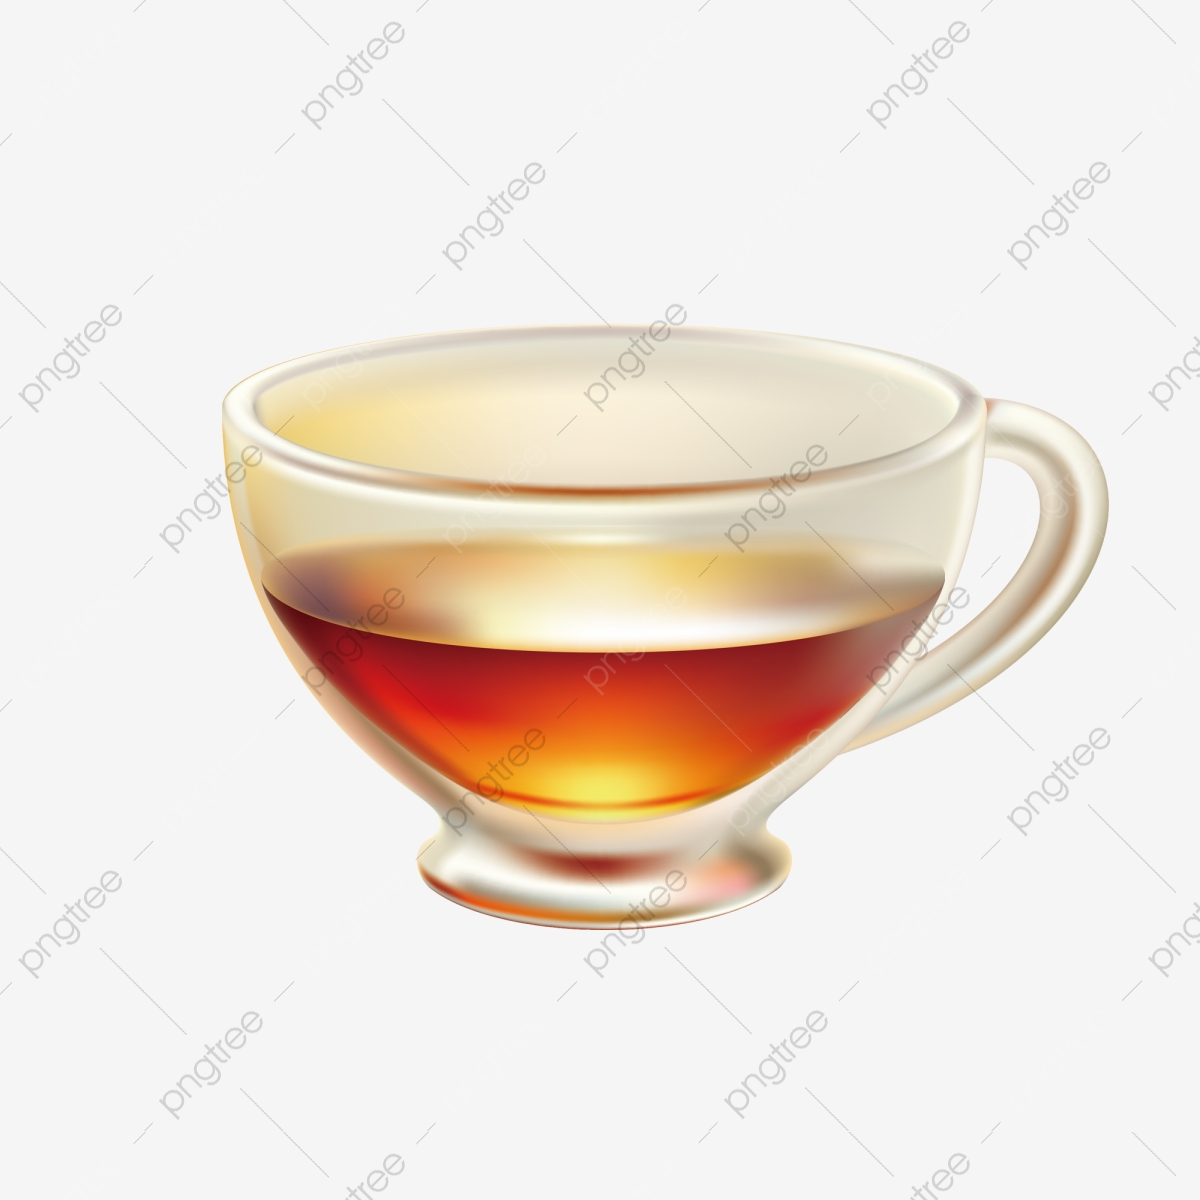 tea vector png free green tea tea cup milk tea vector images pngtree https pngtree com freepng delicious ginger tea vector material 5469289 html